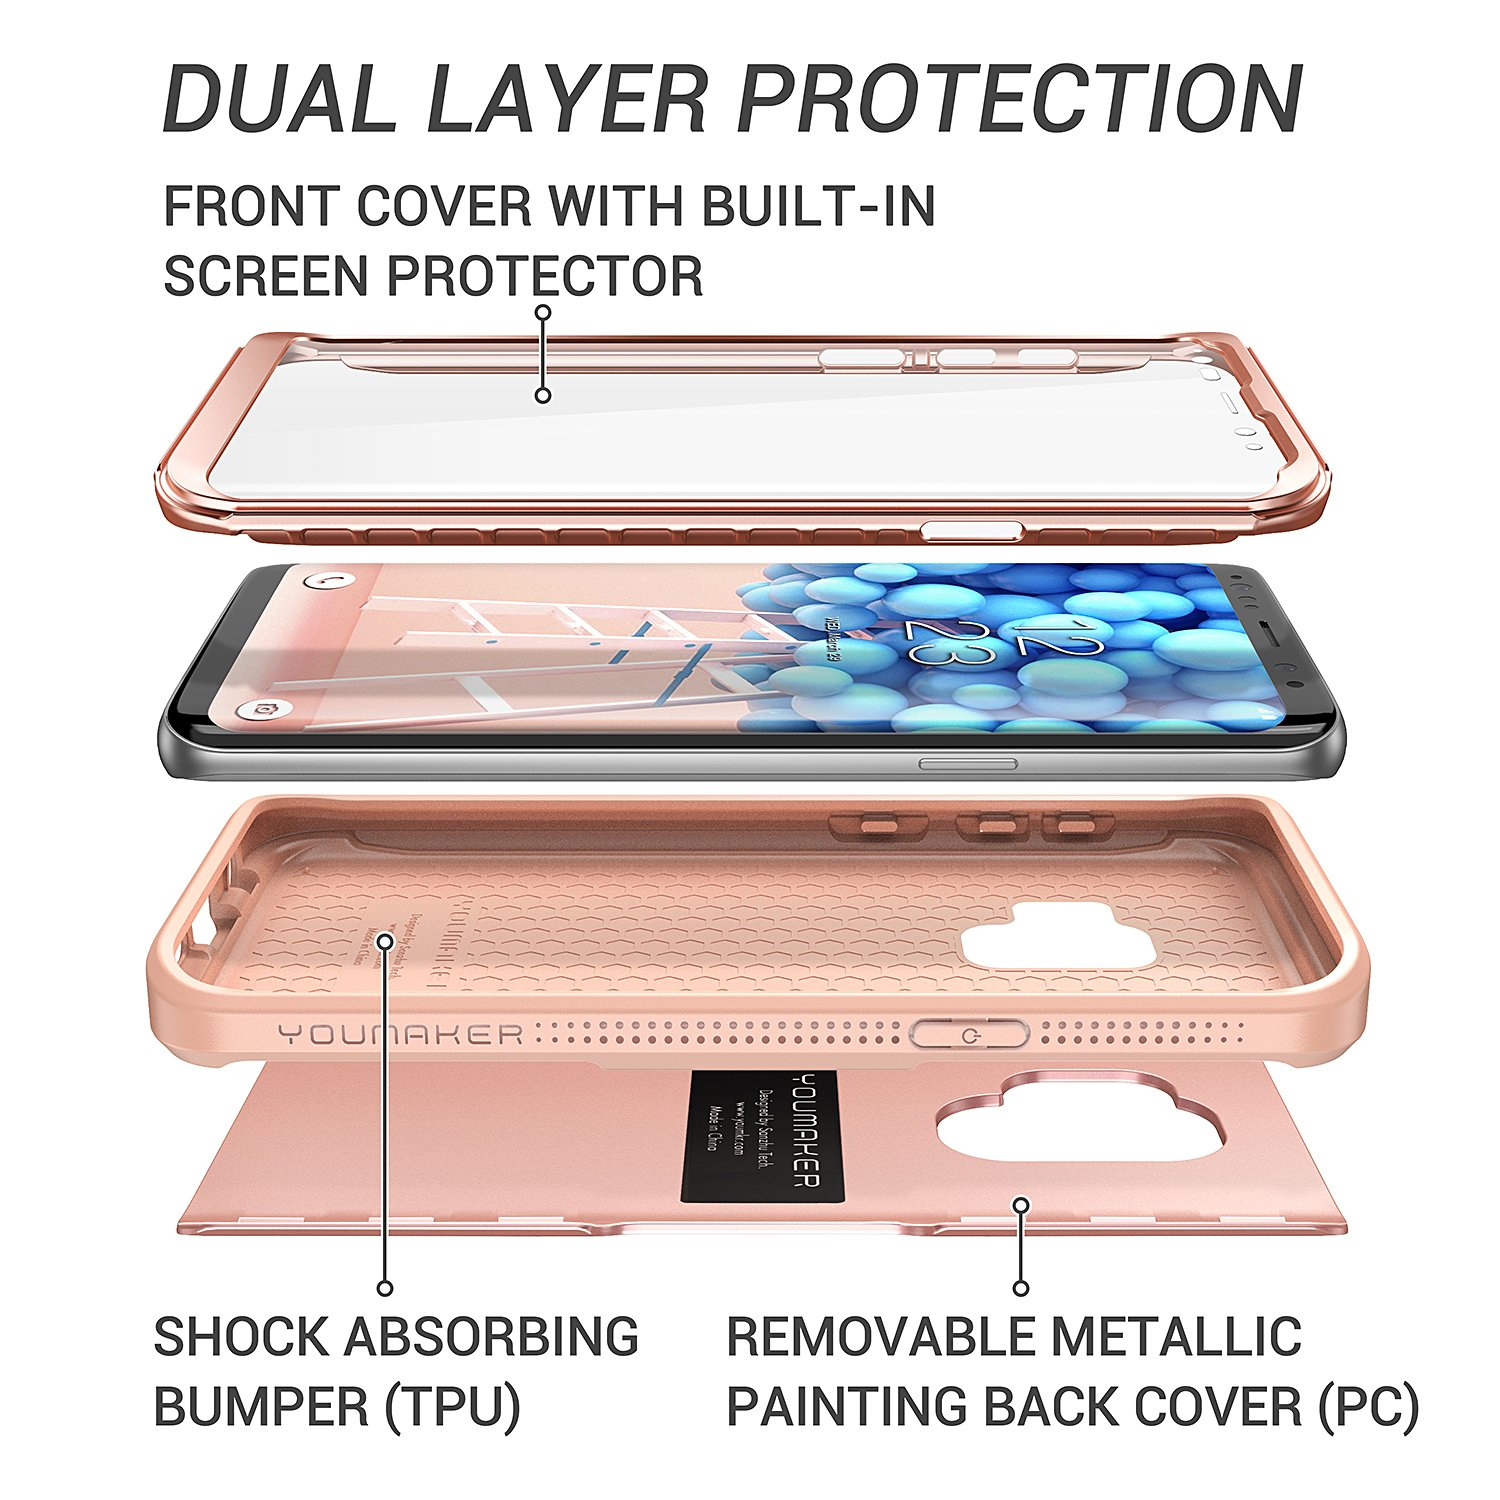 Galaxy S9 Case, YOUMAKER Rose Gold with Built-in Screen Protector Heavy Duty Protection Shockproof Slim Fit Full Body Case Cover for Samsung Galaxy S9 5.8 inch (2018) - Rose Gold/Pink by YOUMAKER (Image #3)